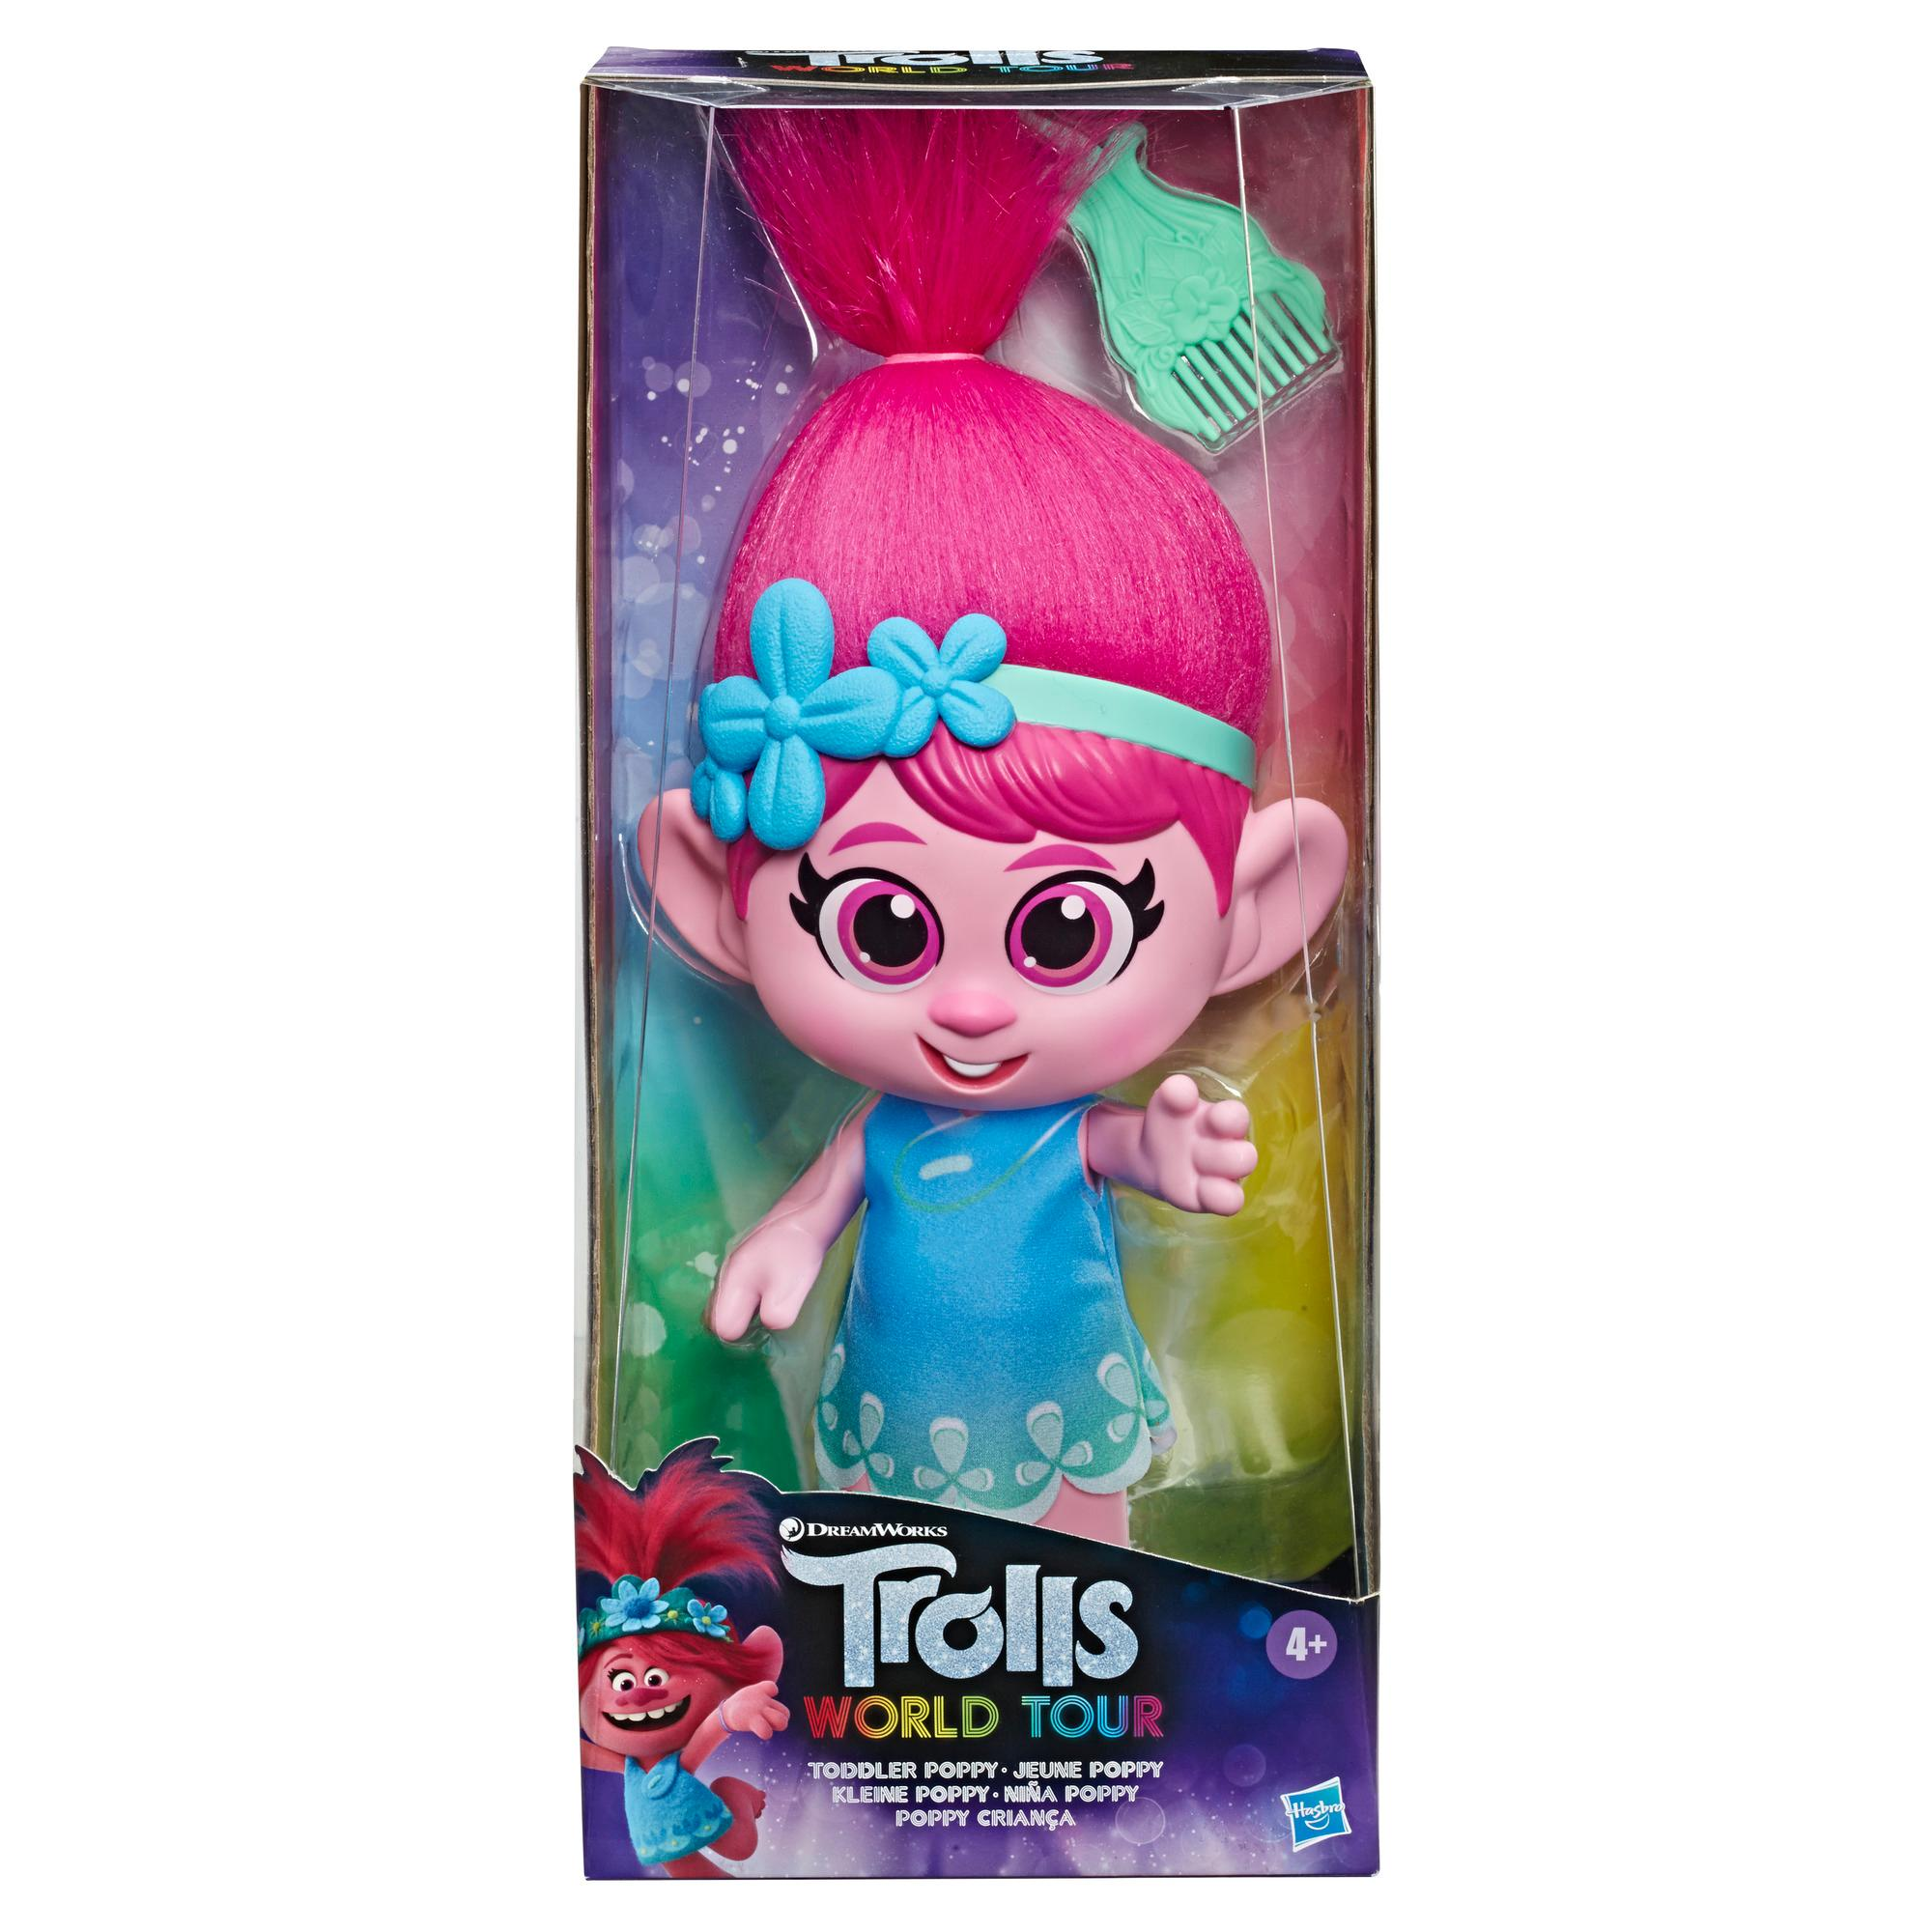 DreamWorks Trolls World Tour Toddler Poppy Doll with Removable Dress and Comb, Inspired by the Movie Trolls World Tour